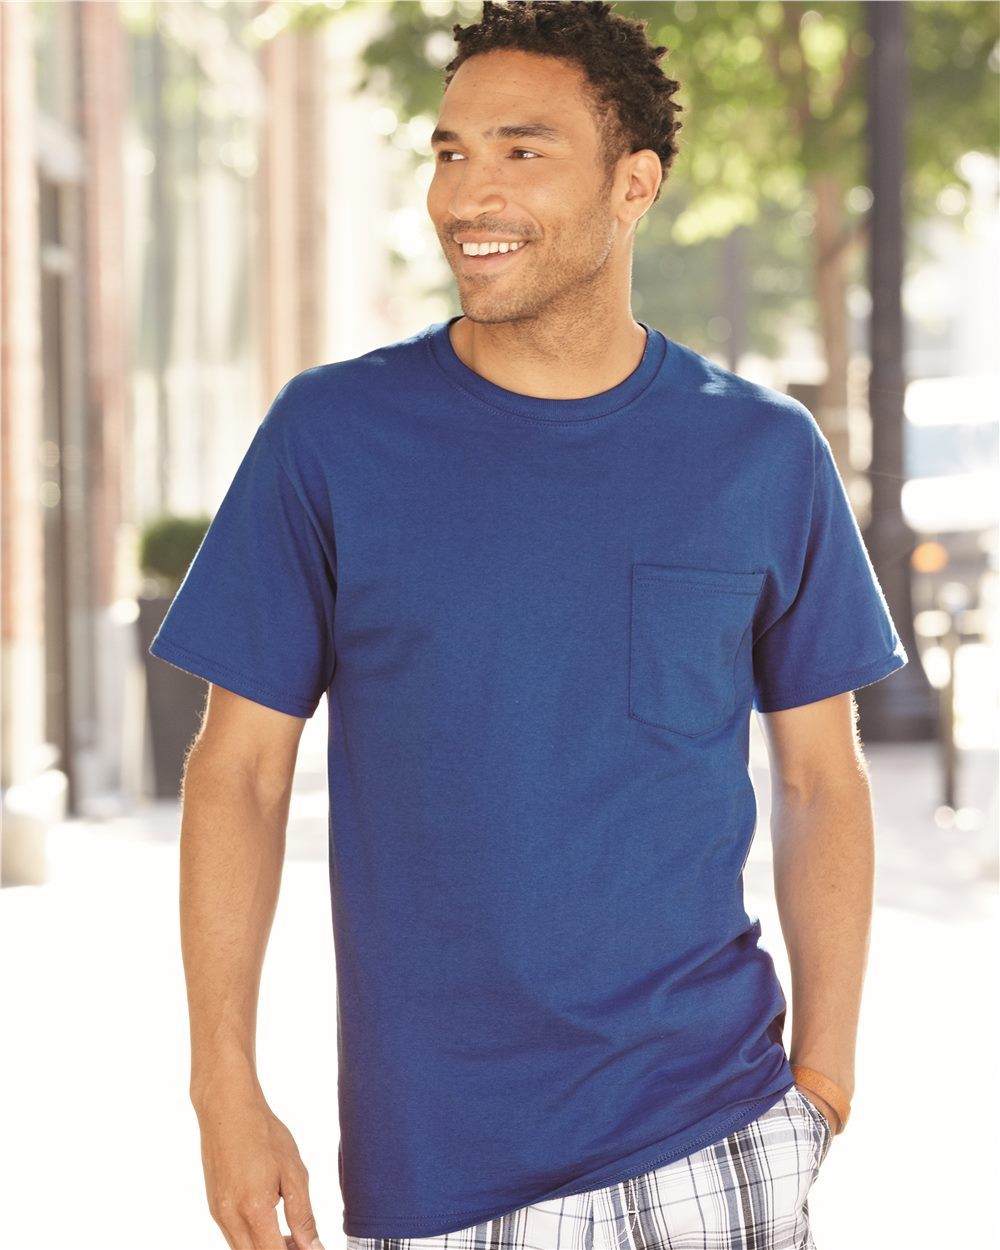 Fruit of the Loom 3930PR Heavy Cotton T-Shirt with a Left Chest Pocket